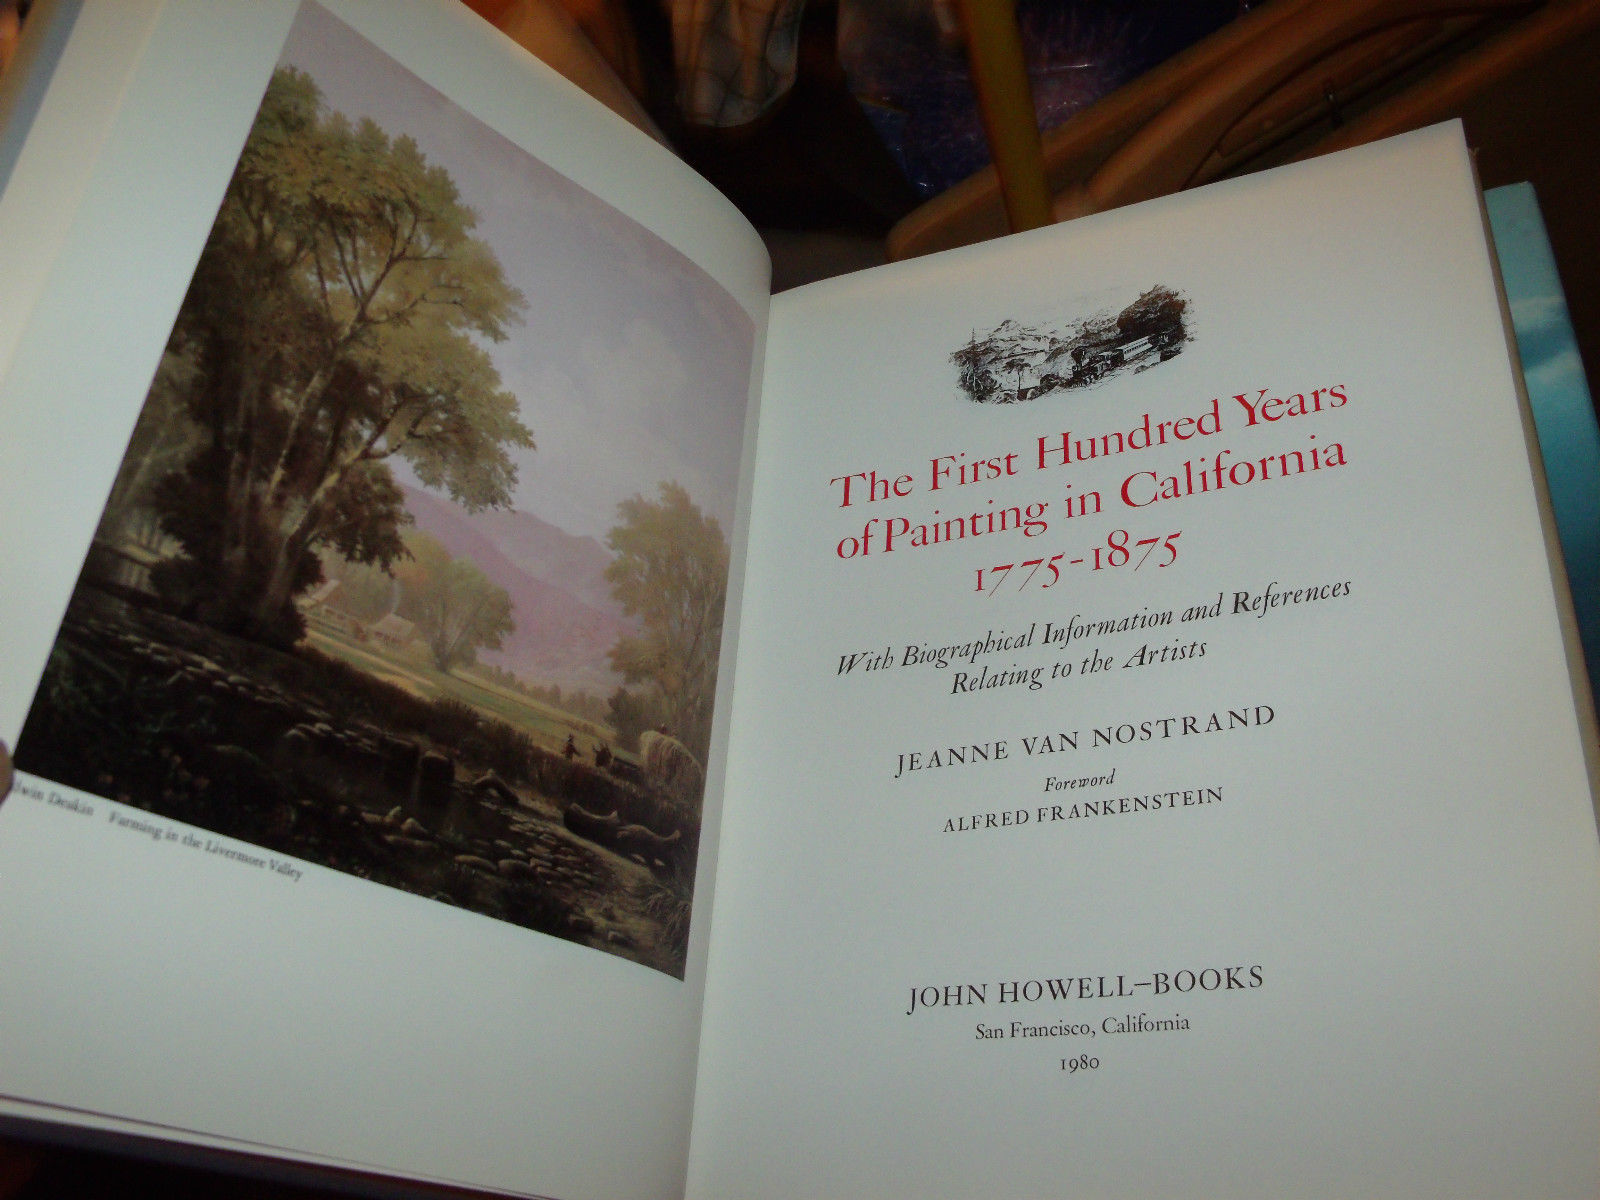 The First Hundred Years of Painting in California, 1775-1875: LE 2500 COPIES